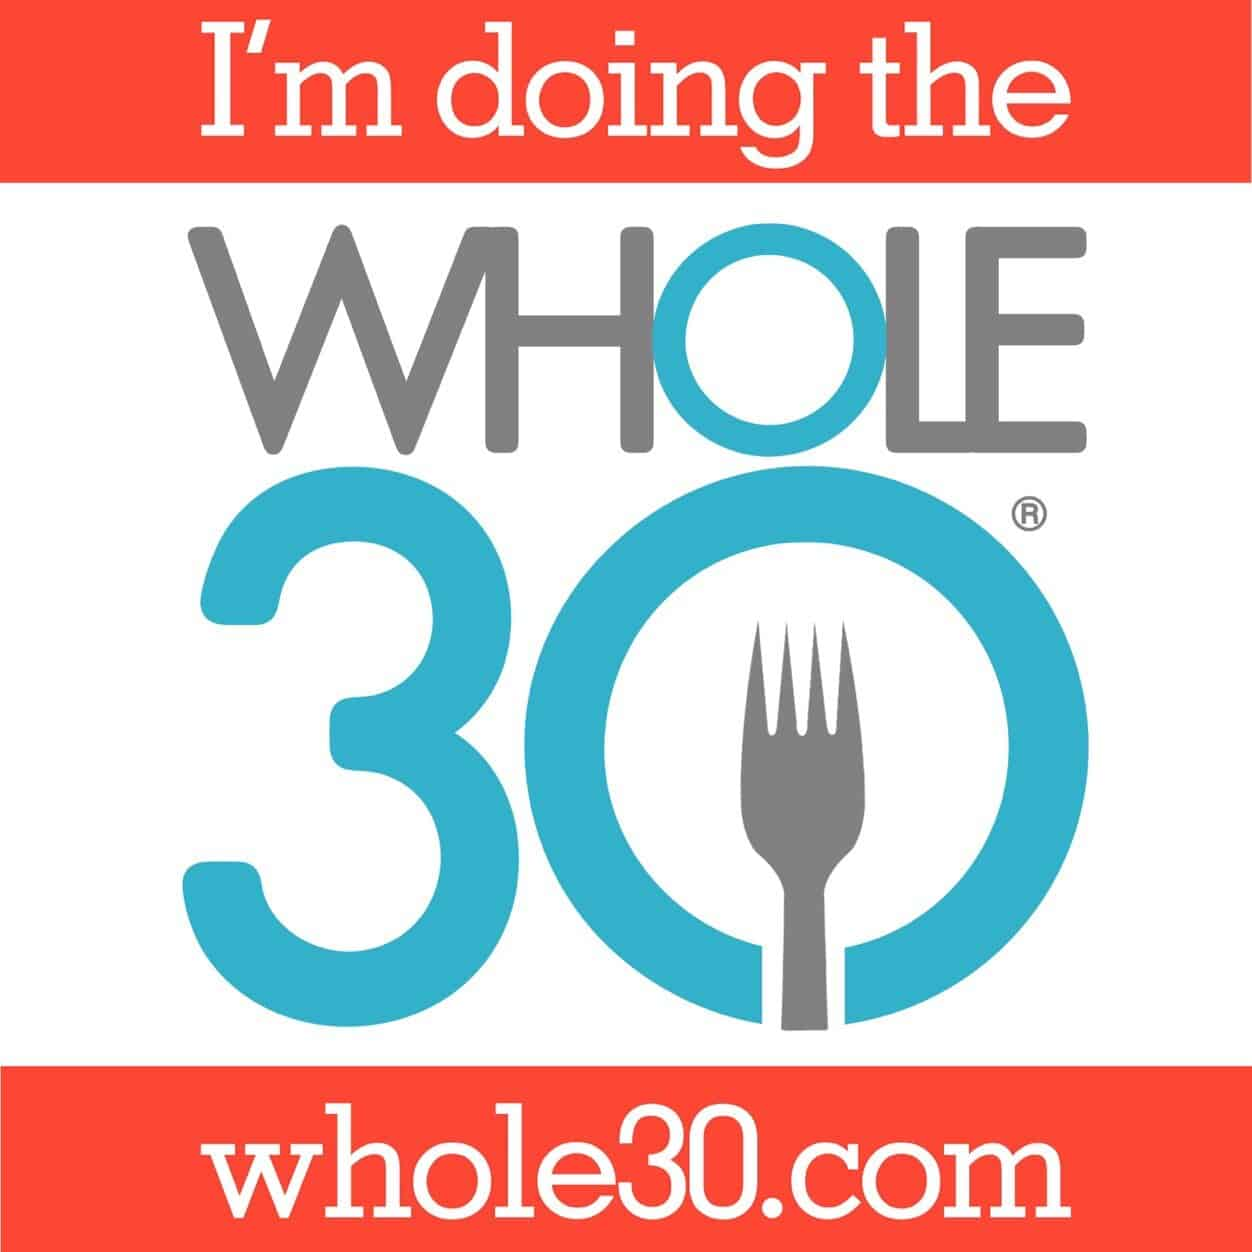 I'm Doing the Whole30